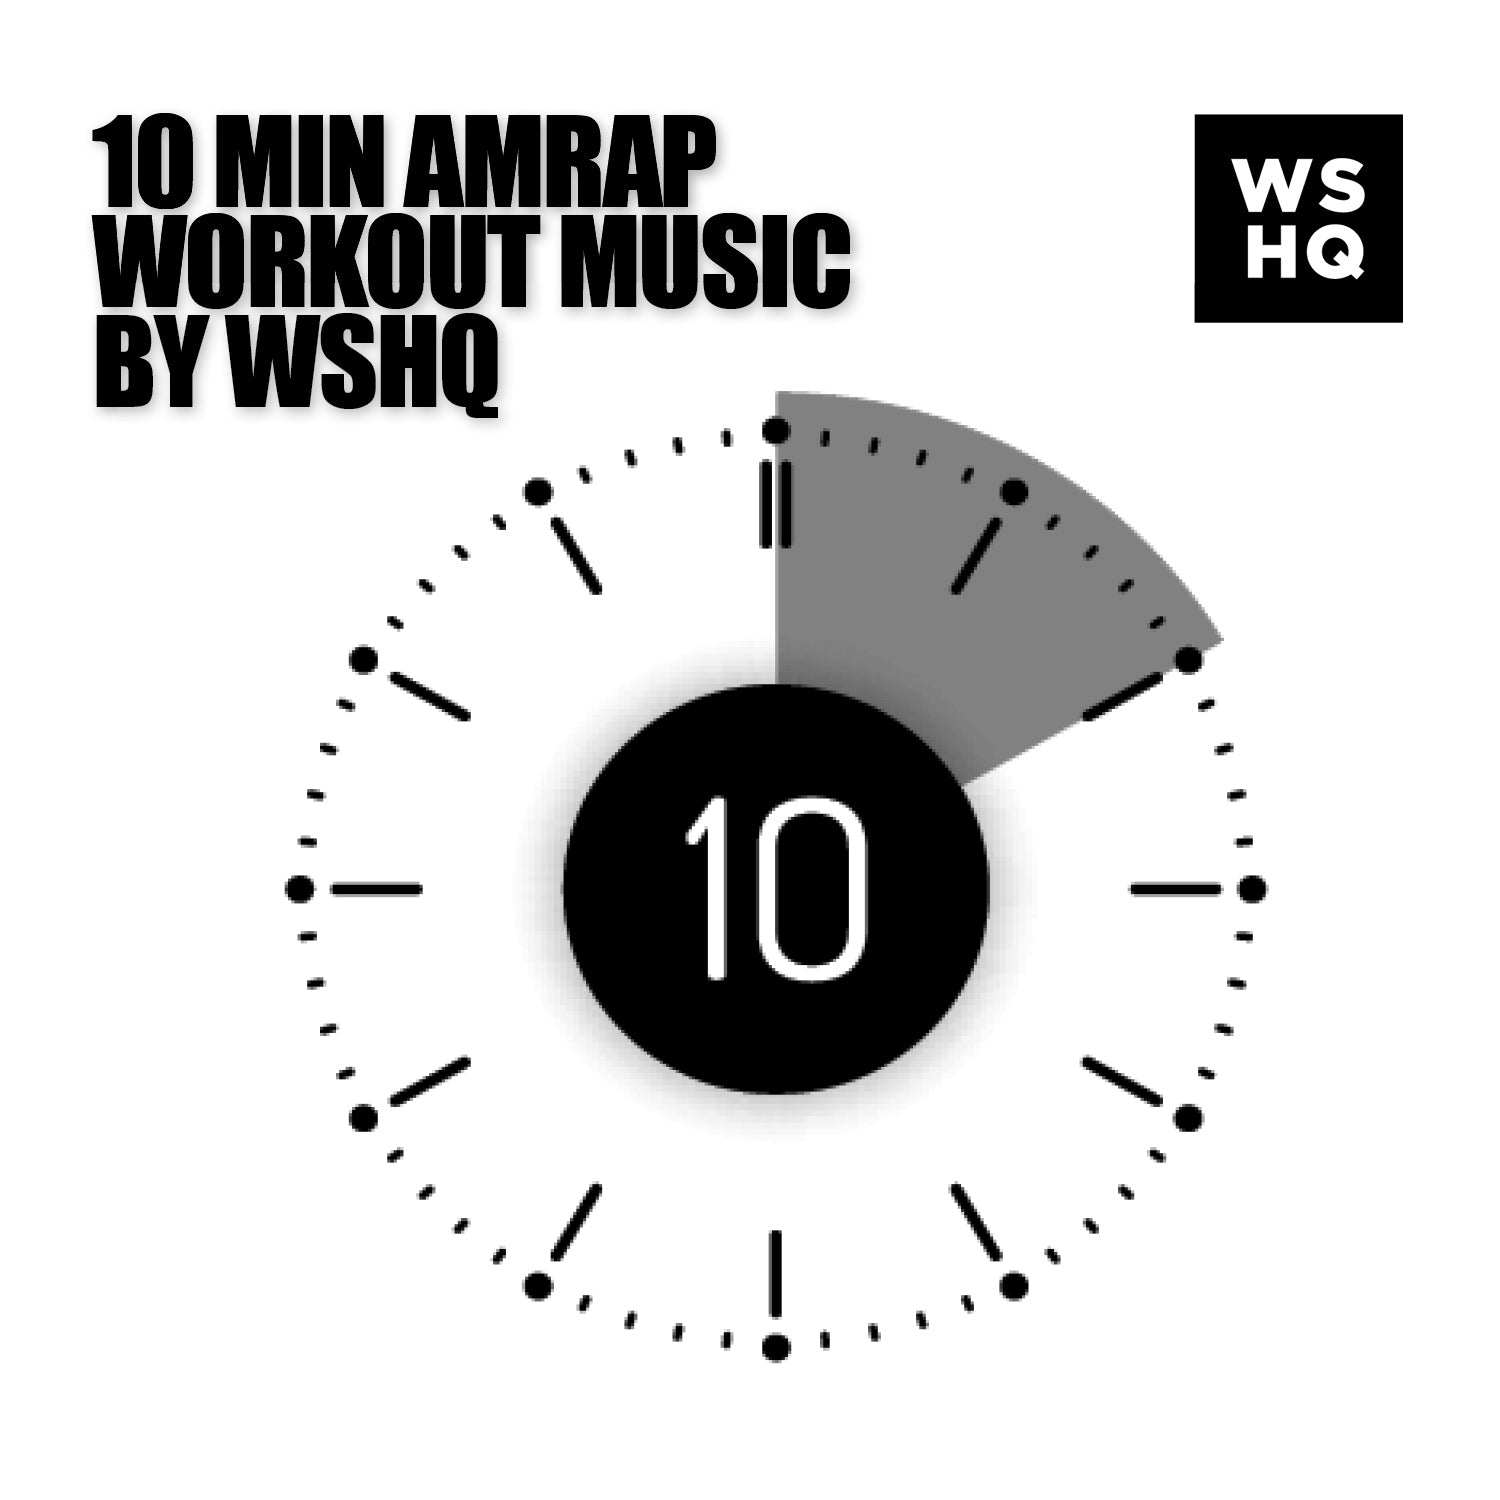 10 minute timer for amrap wshq workout music